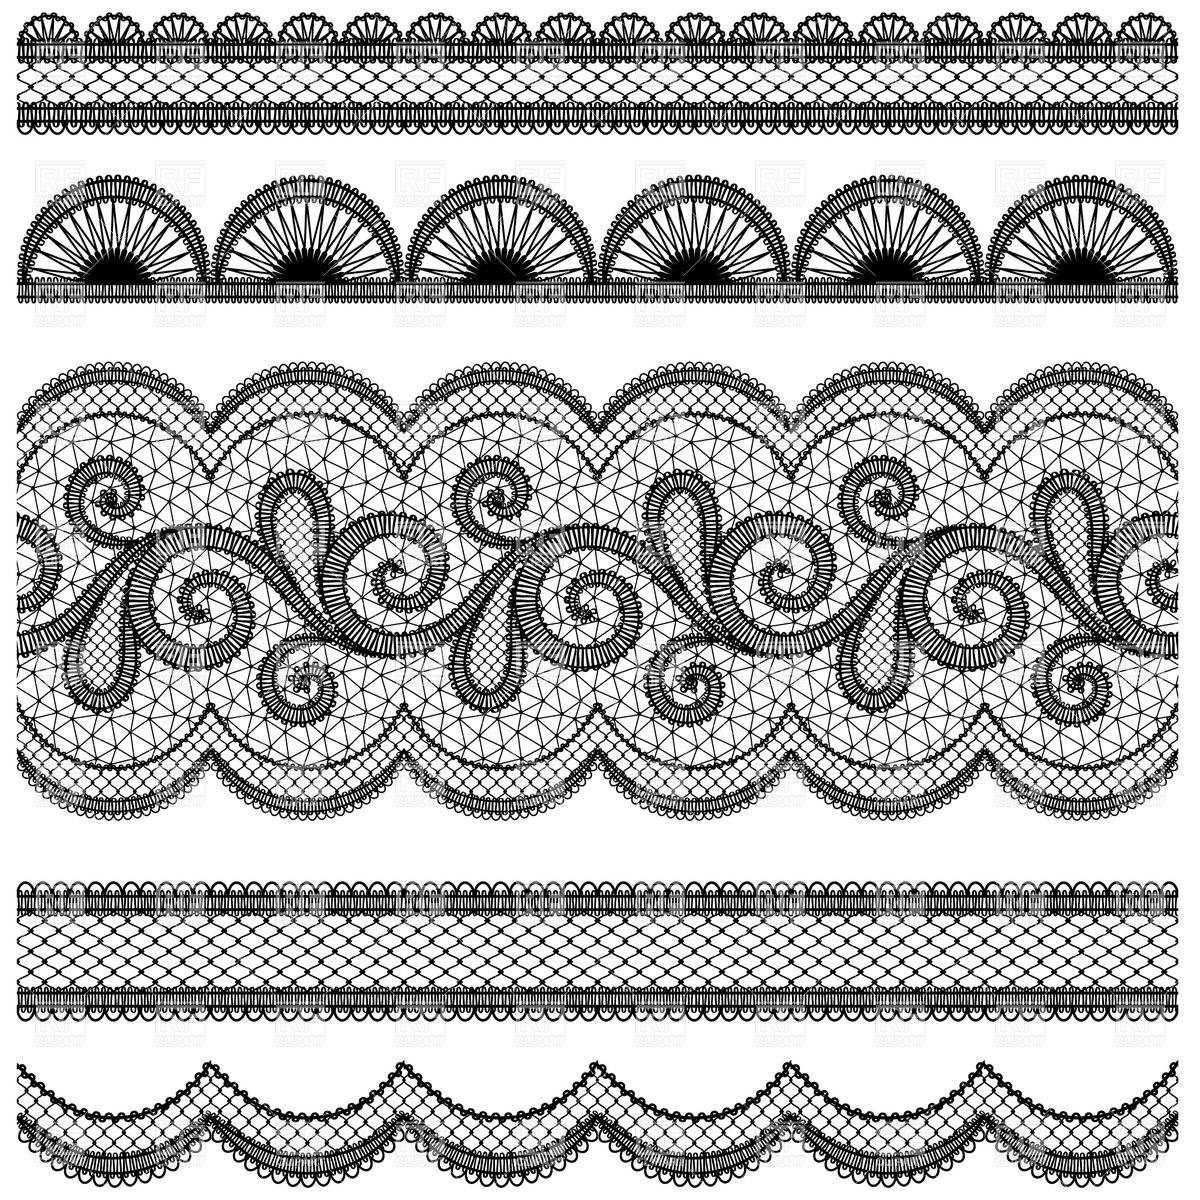 1200x1200 Set Of Ornate Lace Borders Vector Image Vector Artwork Of